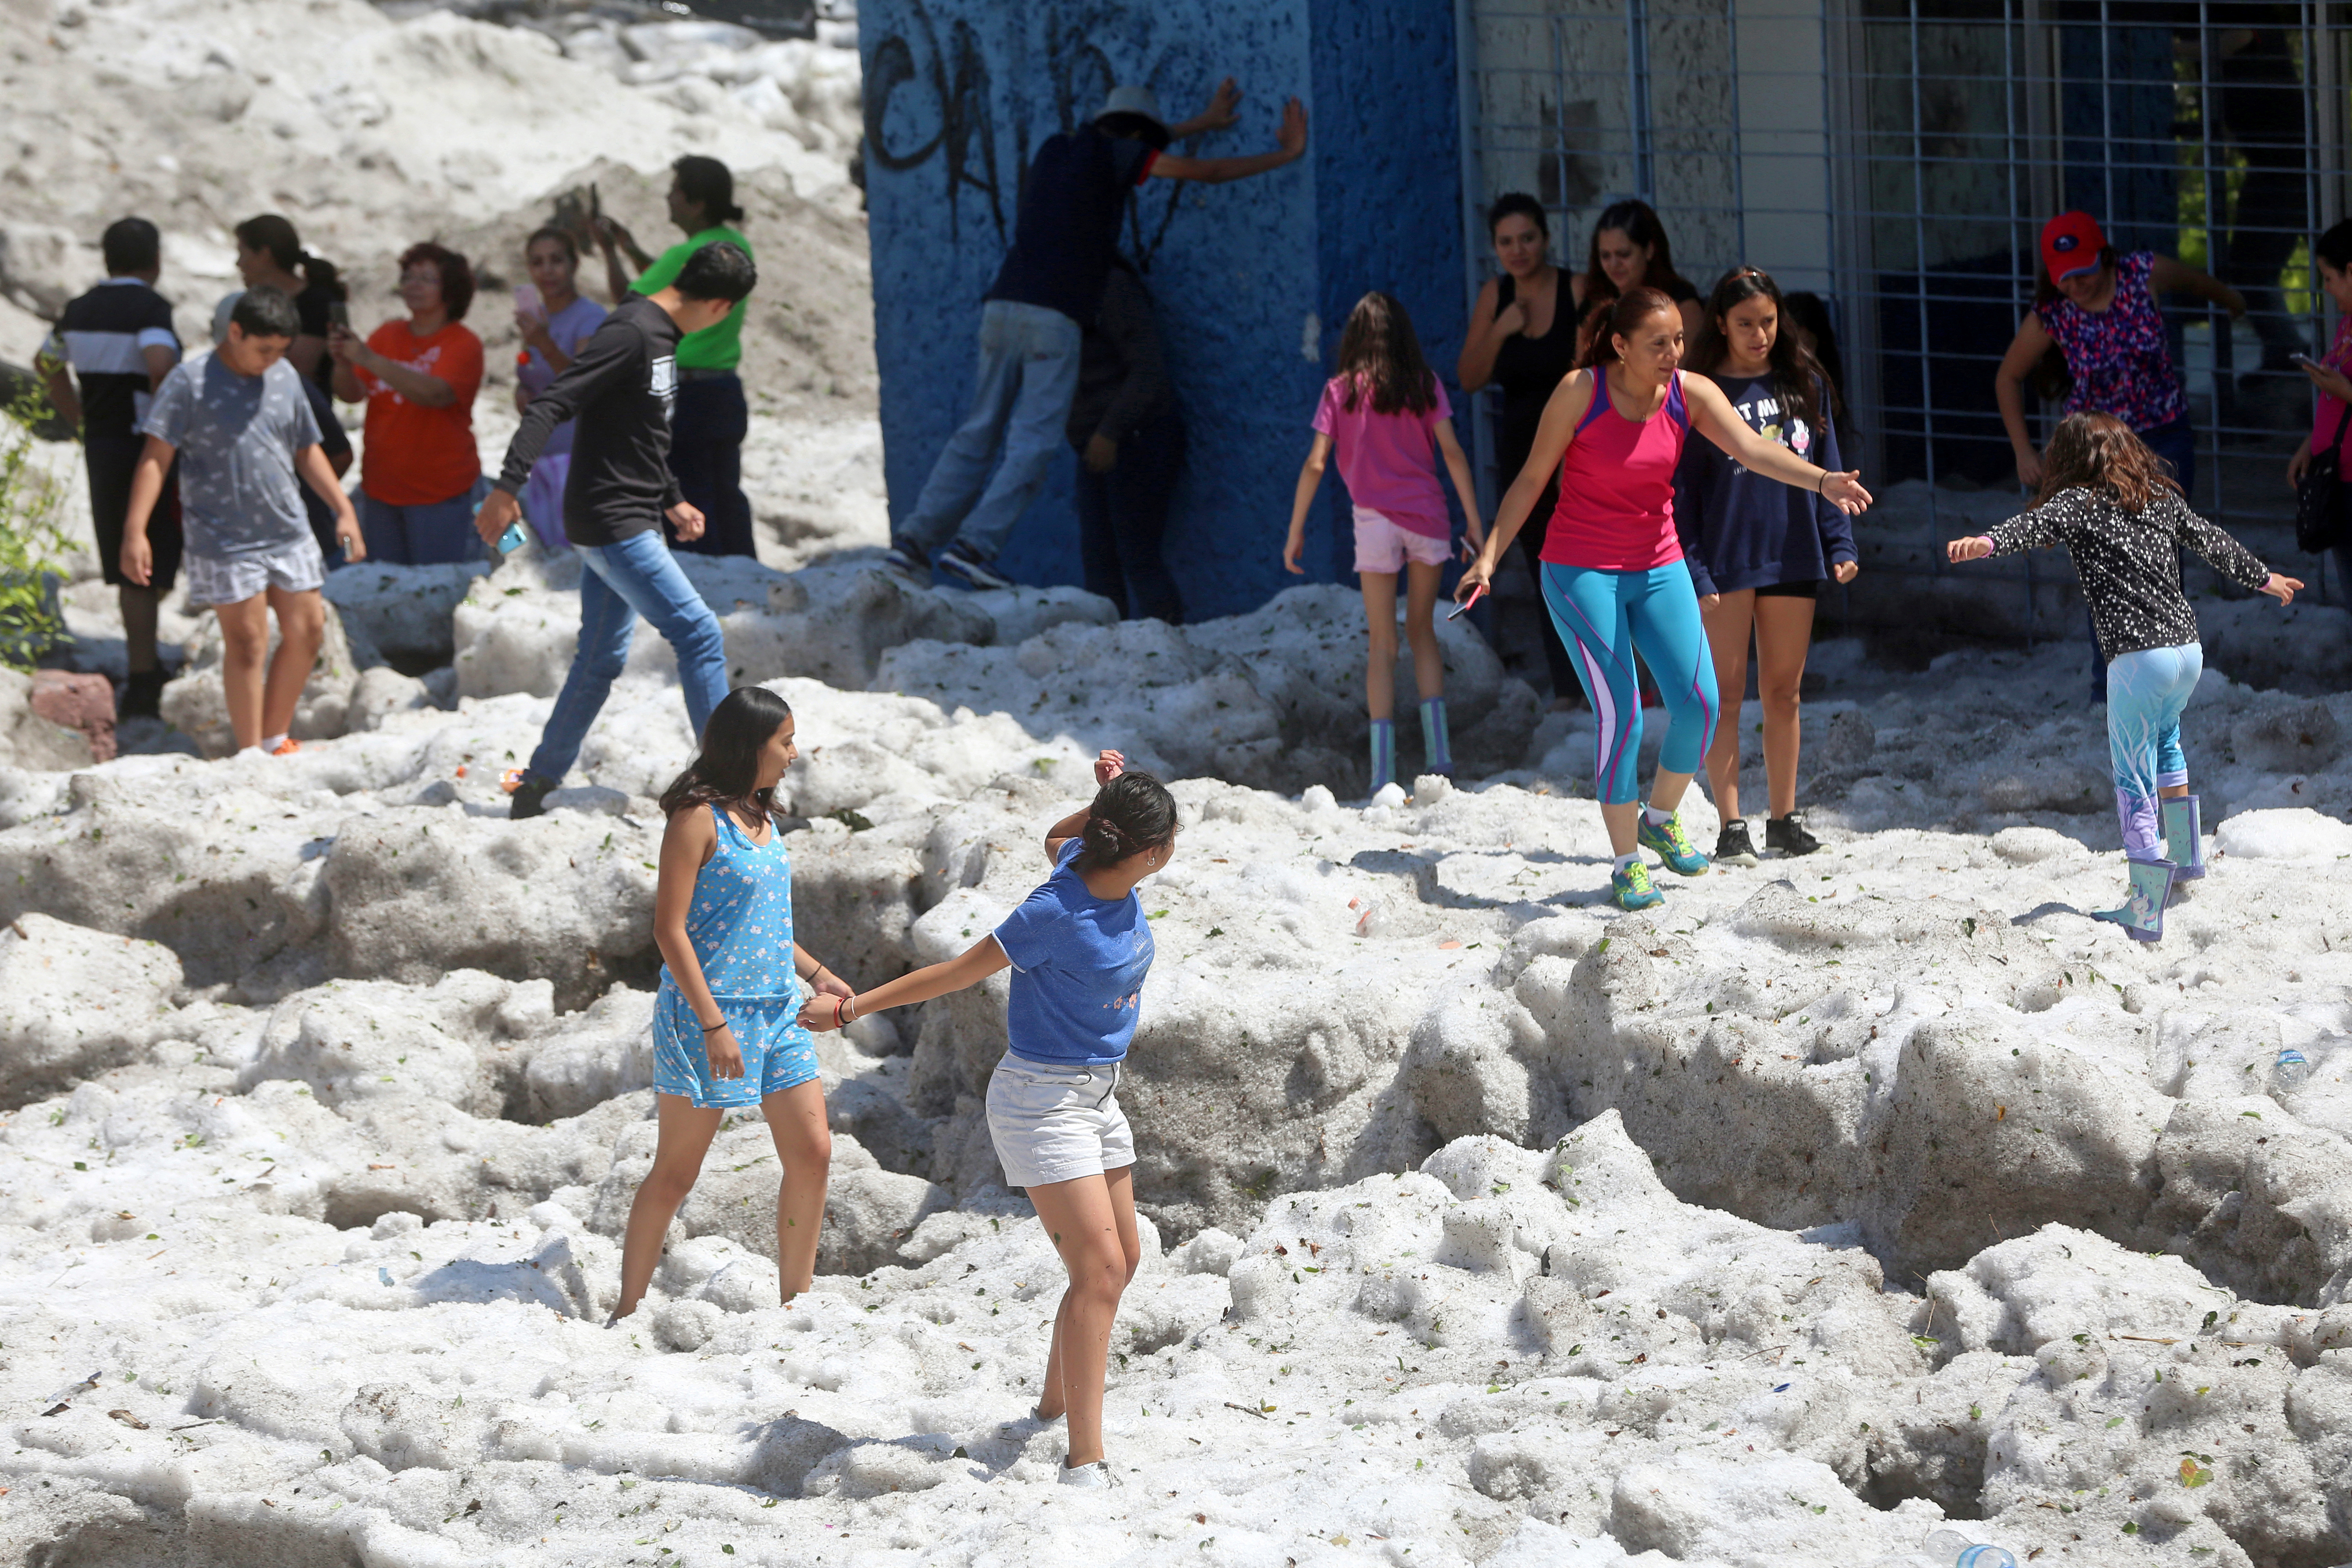 Residents play on top of ice after a heavy storm of rain and hail in Guadalajara